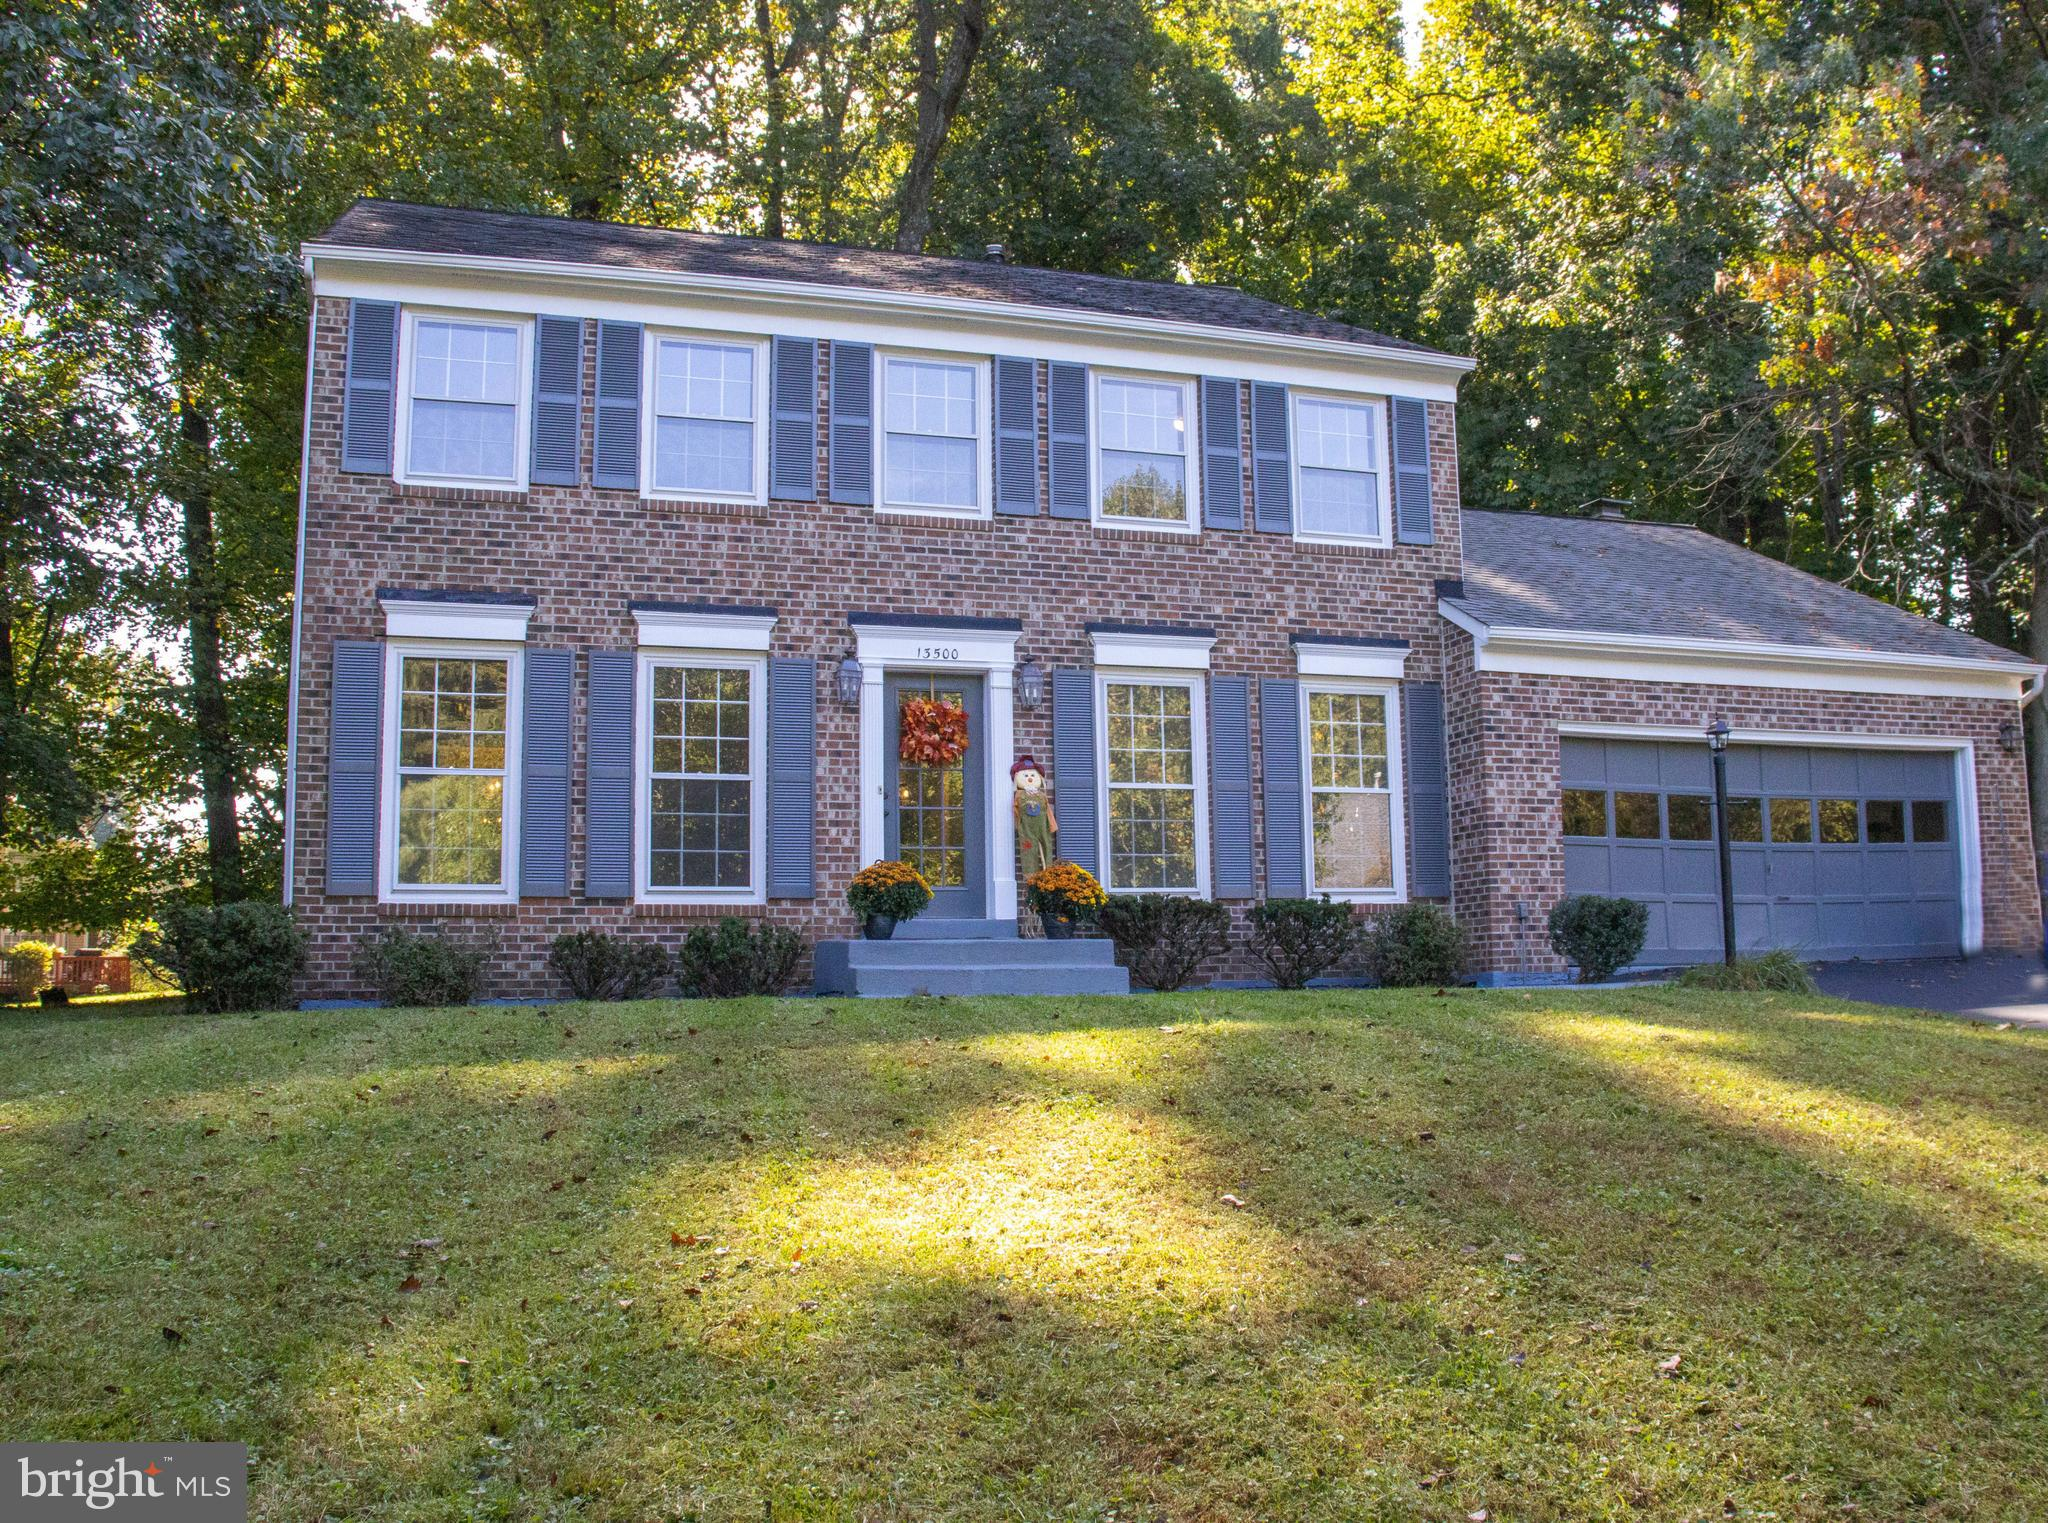 13500 Round Tree Court, Silver Spring, MD 20906